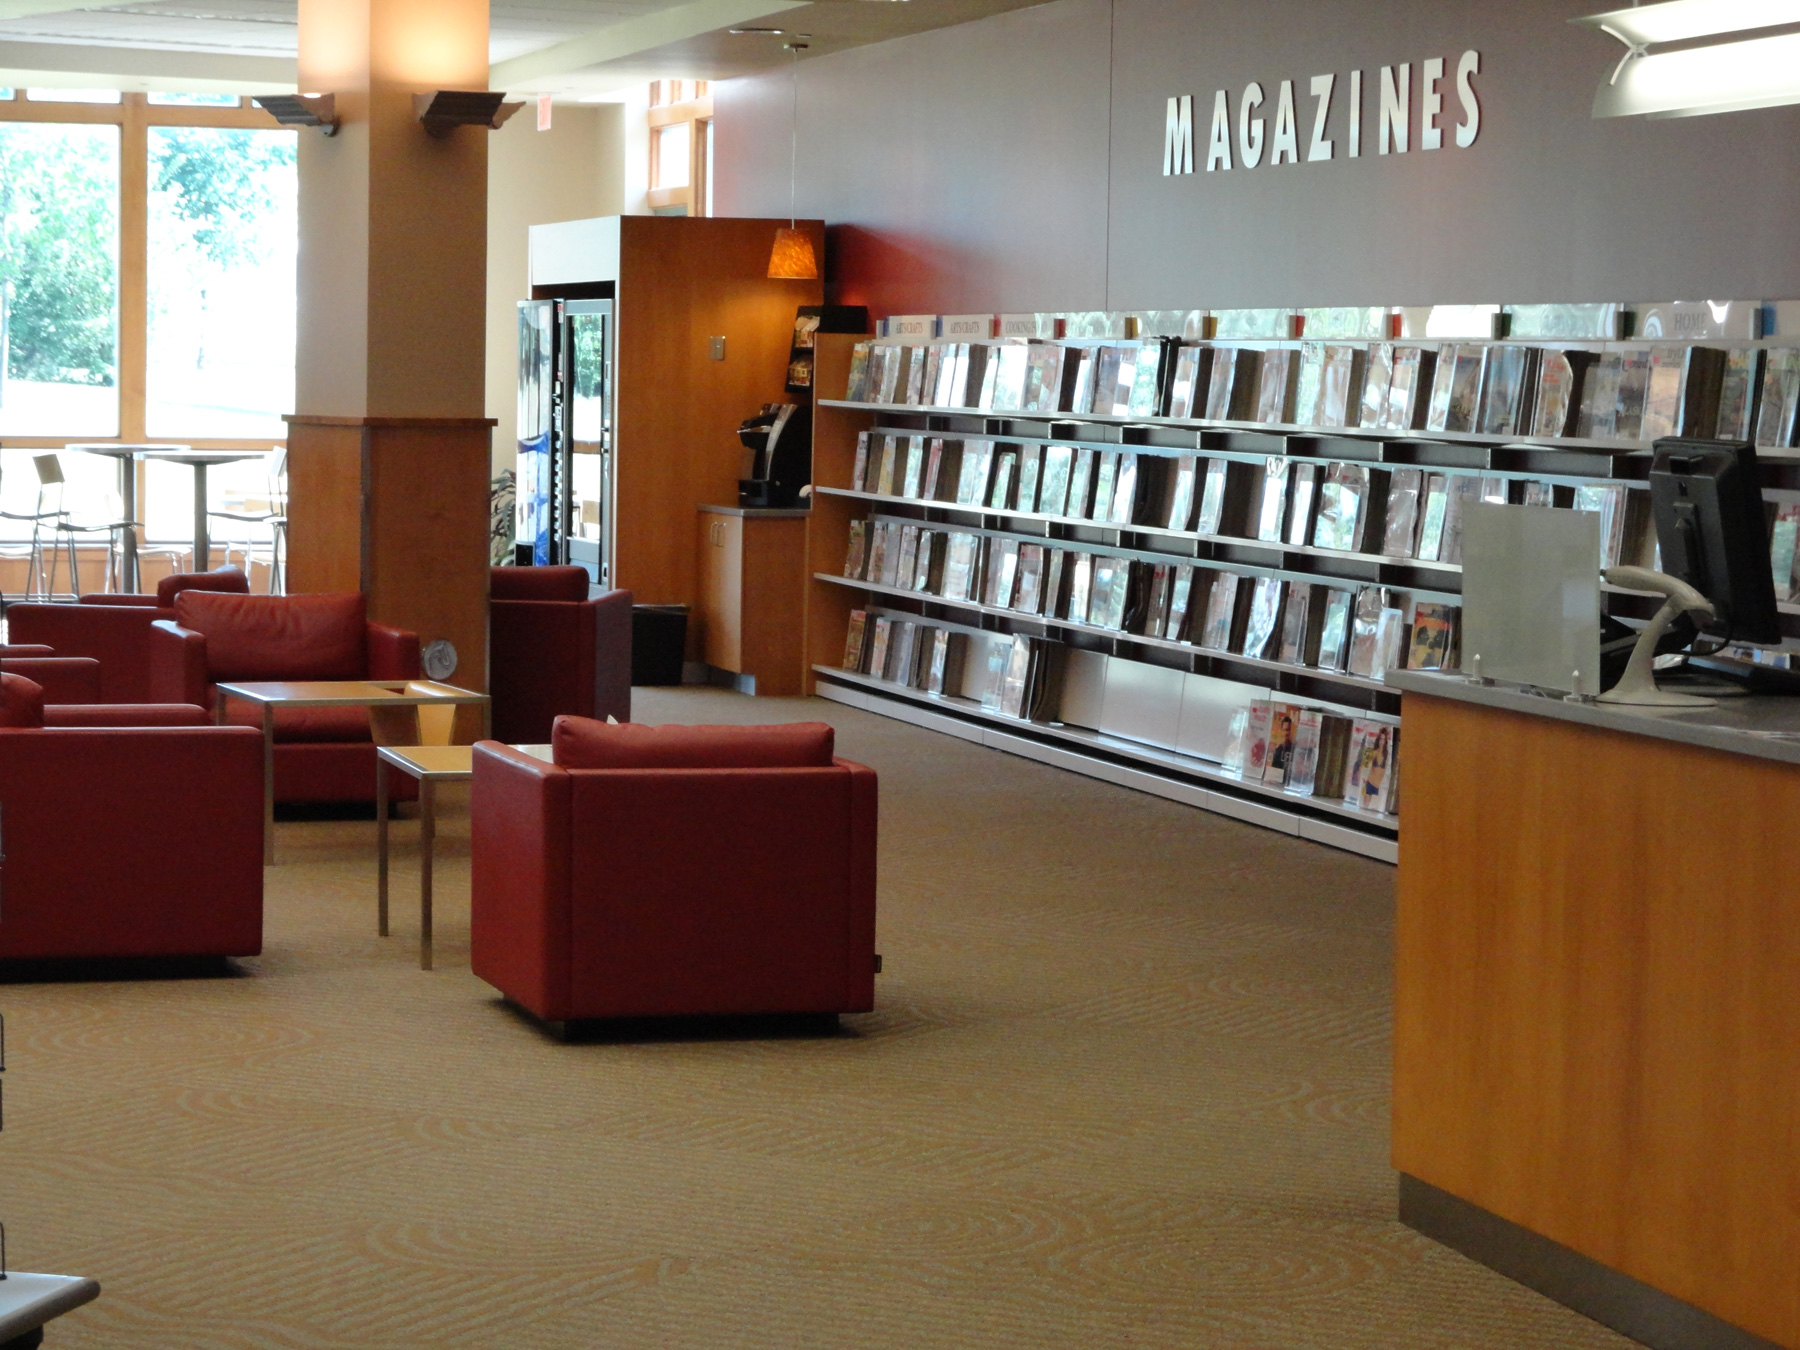 Innovative Library: Ela Area Public Library, Lake Zurich, IL - Ideas & Inspiration from Demco